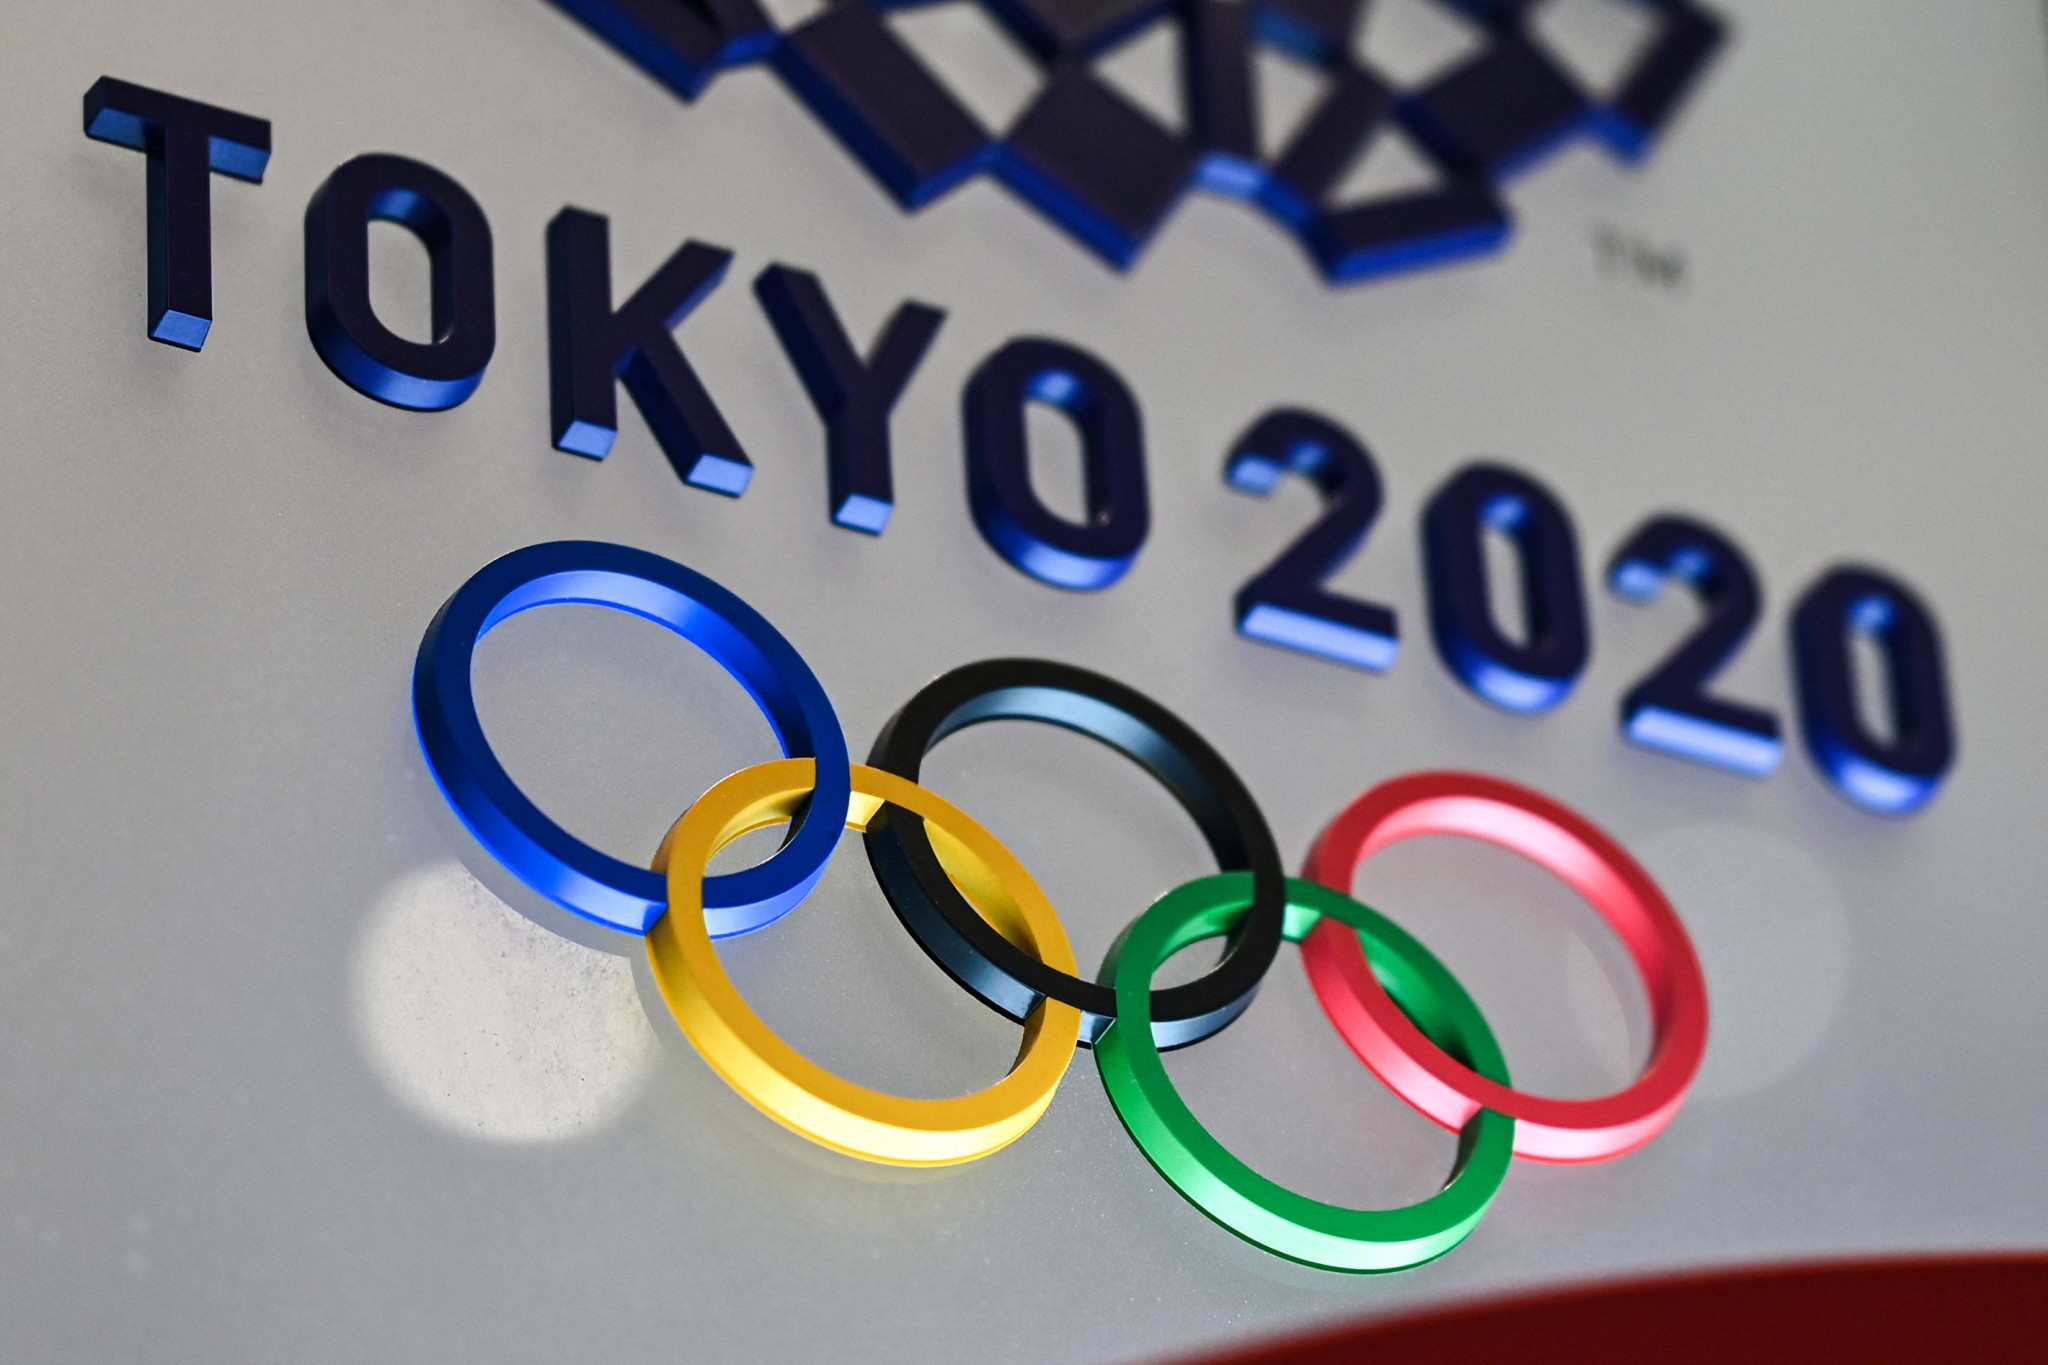 More than 50 per cent of Japanese firms in favour of Tokyo 2020 postponement or cancellation